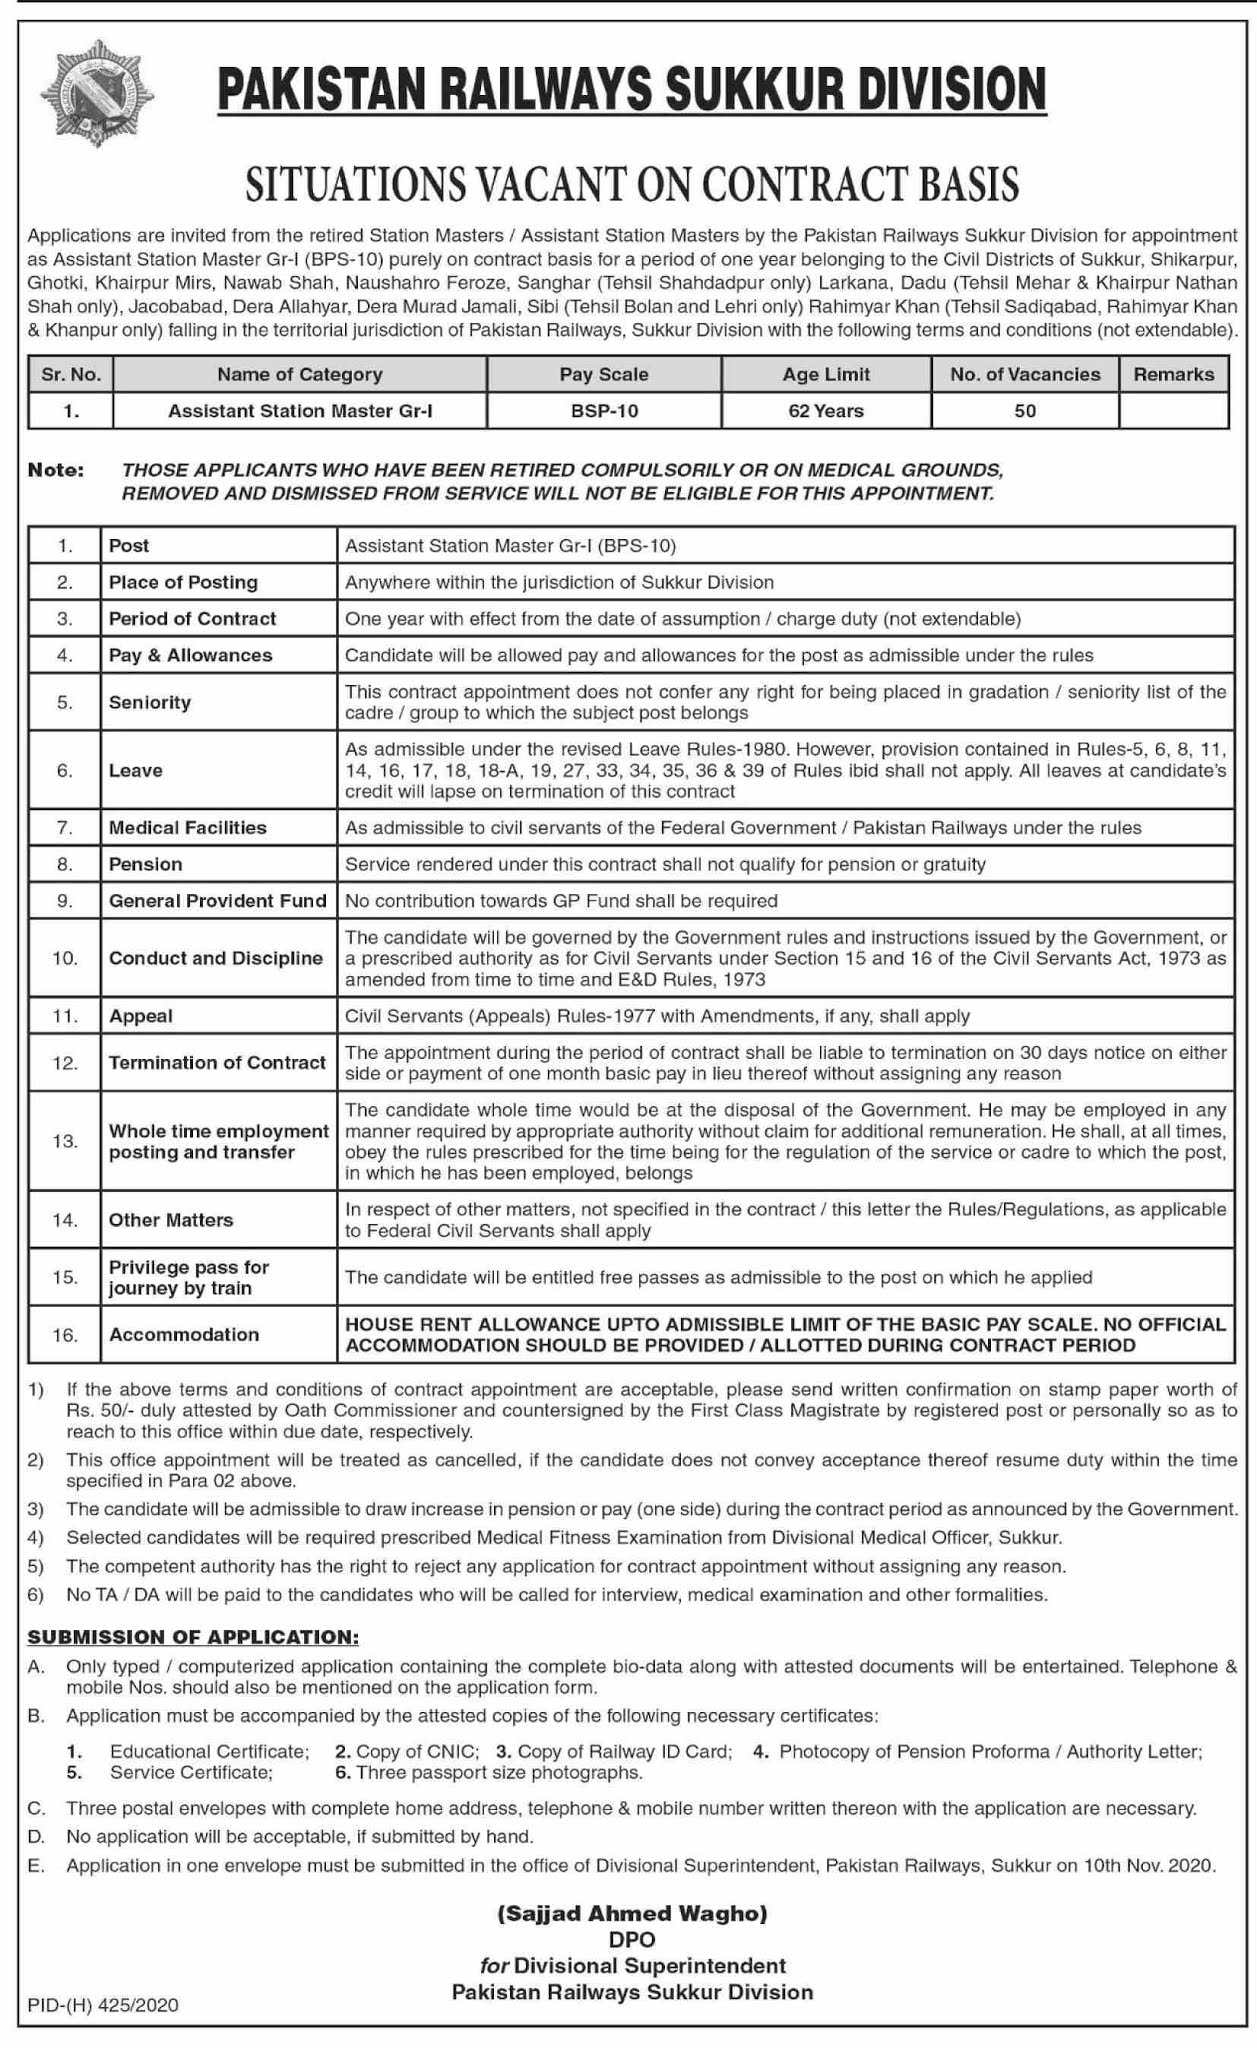 Pakistan Railways Sukkur Division Latest Jobs in Pakistan For Assistant Station Master ASM Post in Pakistan Jobs 2021